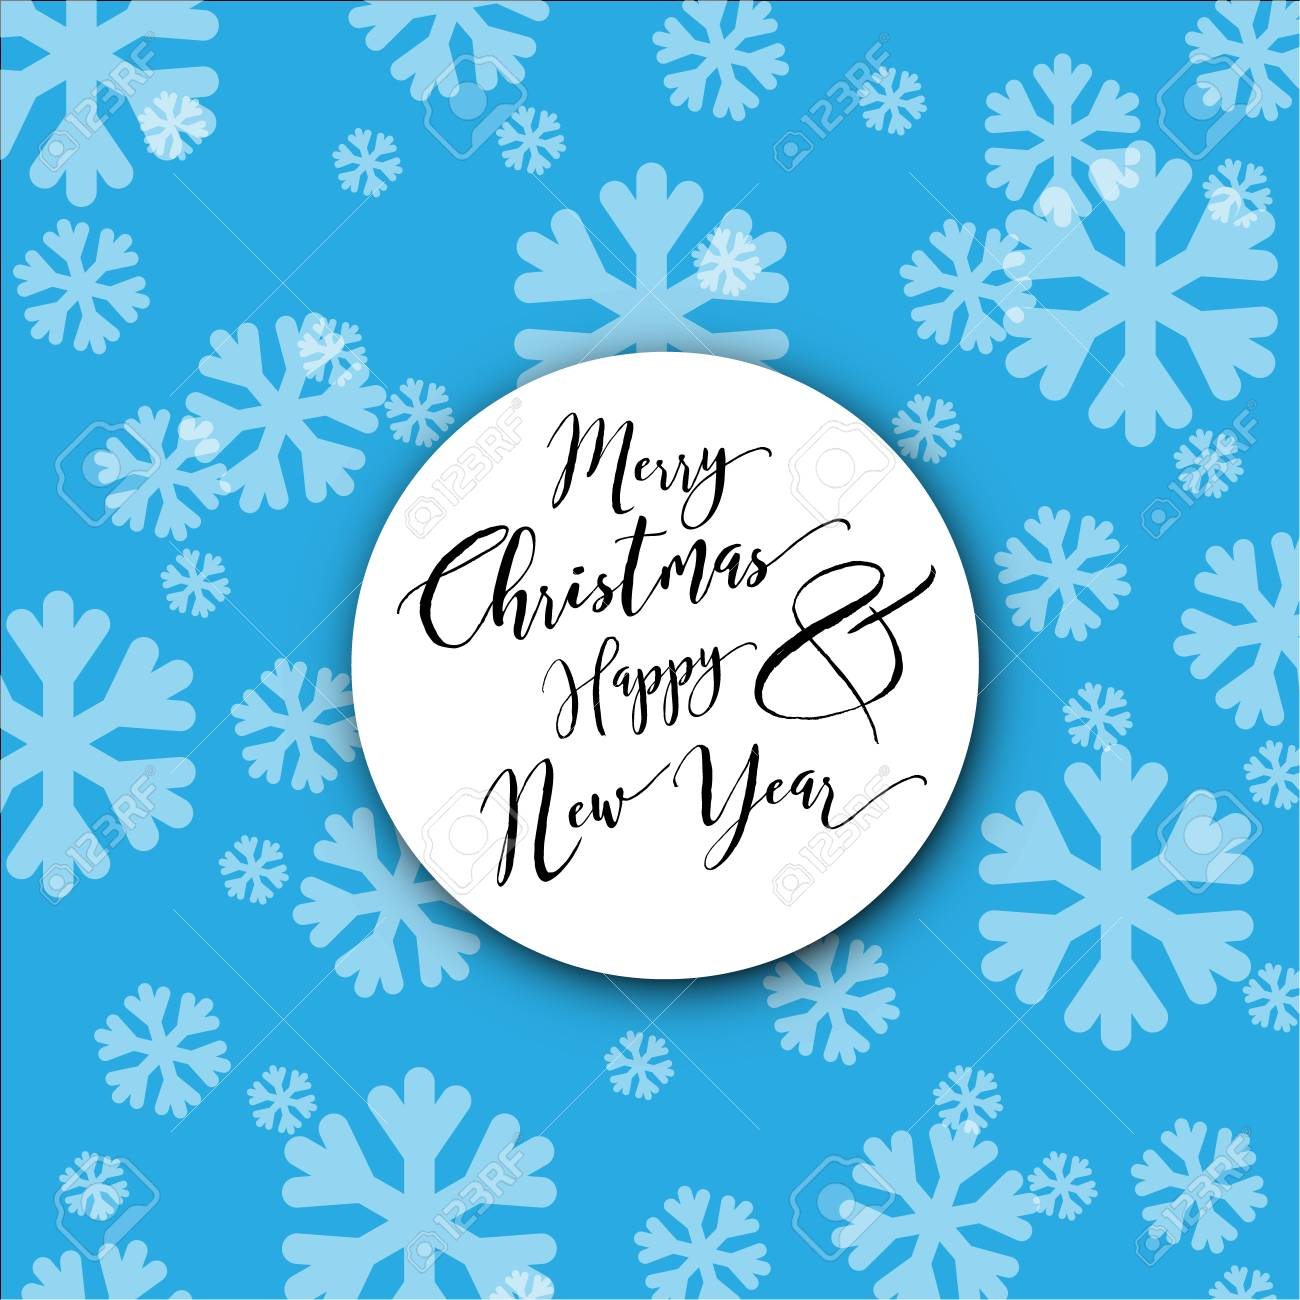 minimalist christmas card with white snowflakes on blue background